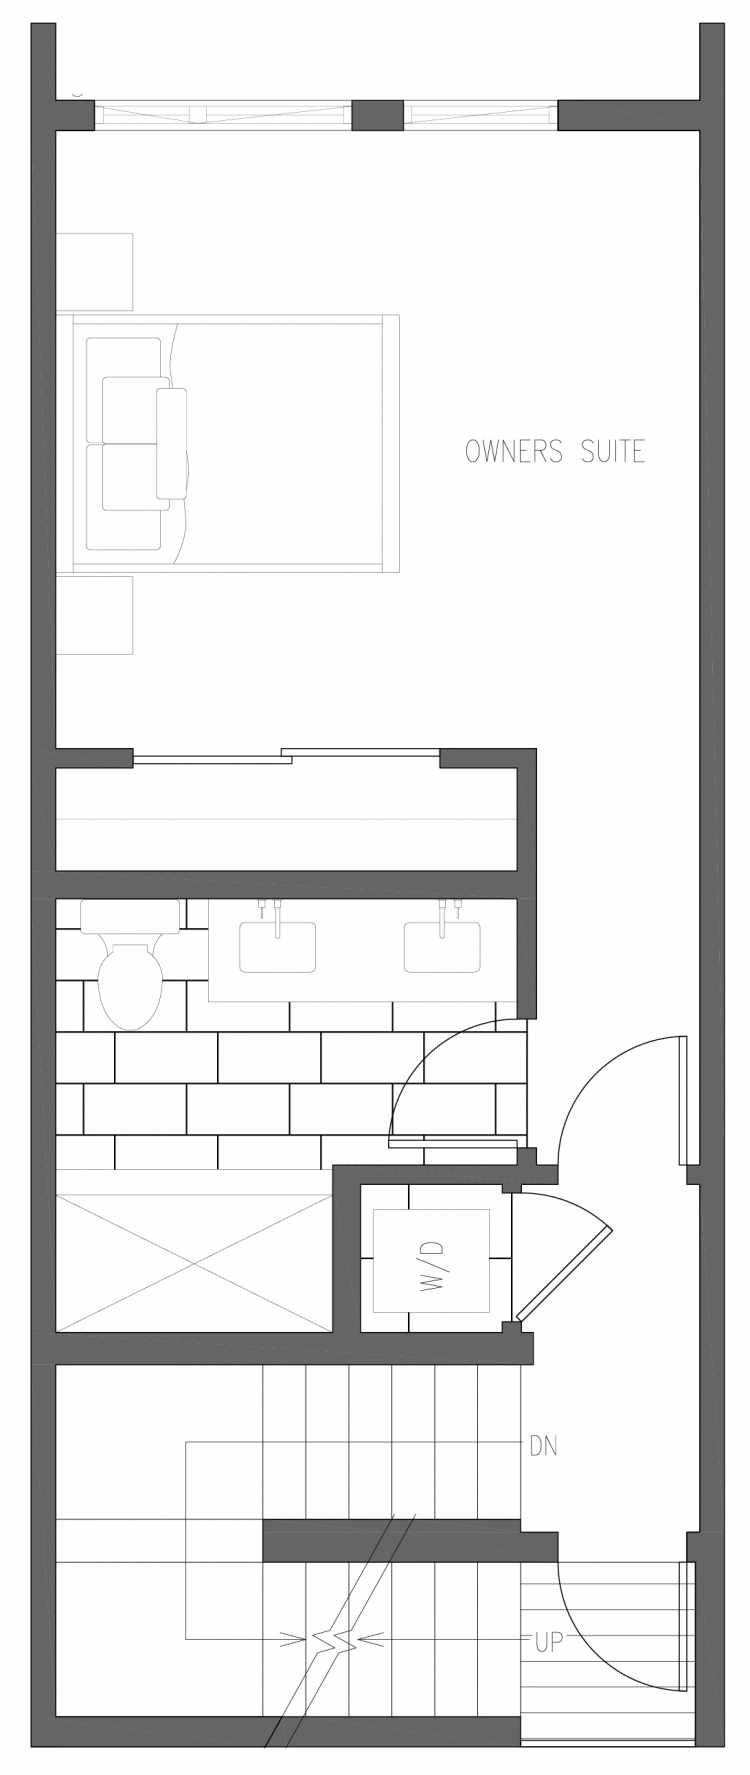 Third Floor Plan of 6419 14th Ave NW, One of the Oleana Townhomes in Ballard by Isola Homes